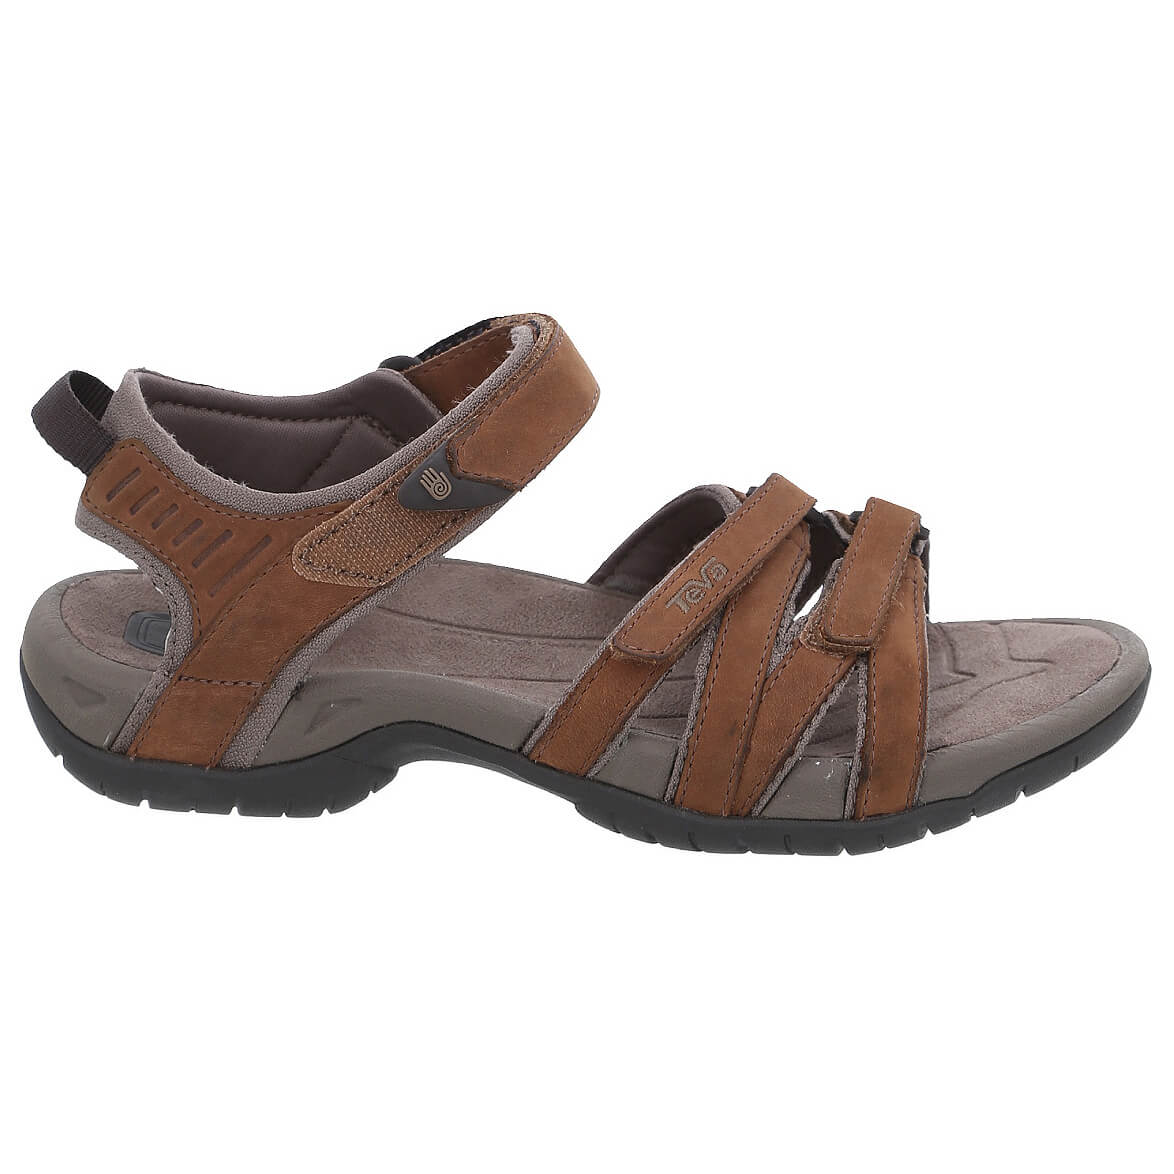 d0c06761e382 Teva - Women s Tirra Leather - Sandals